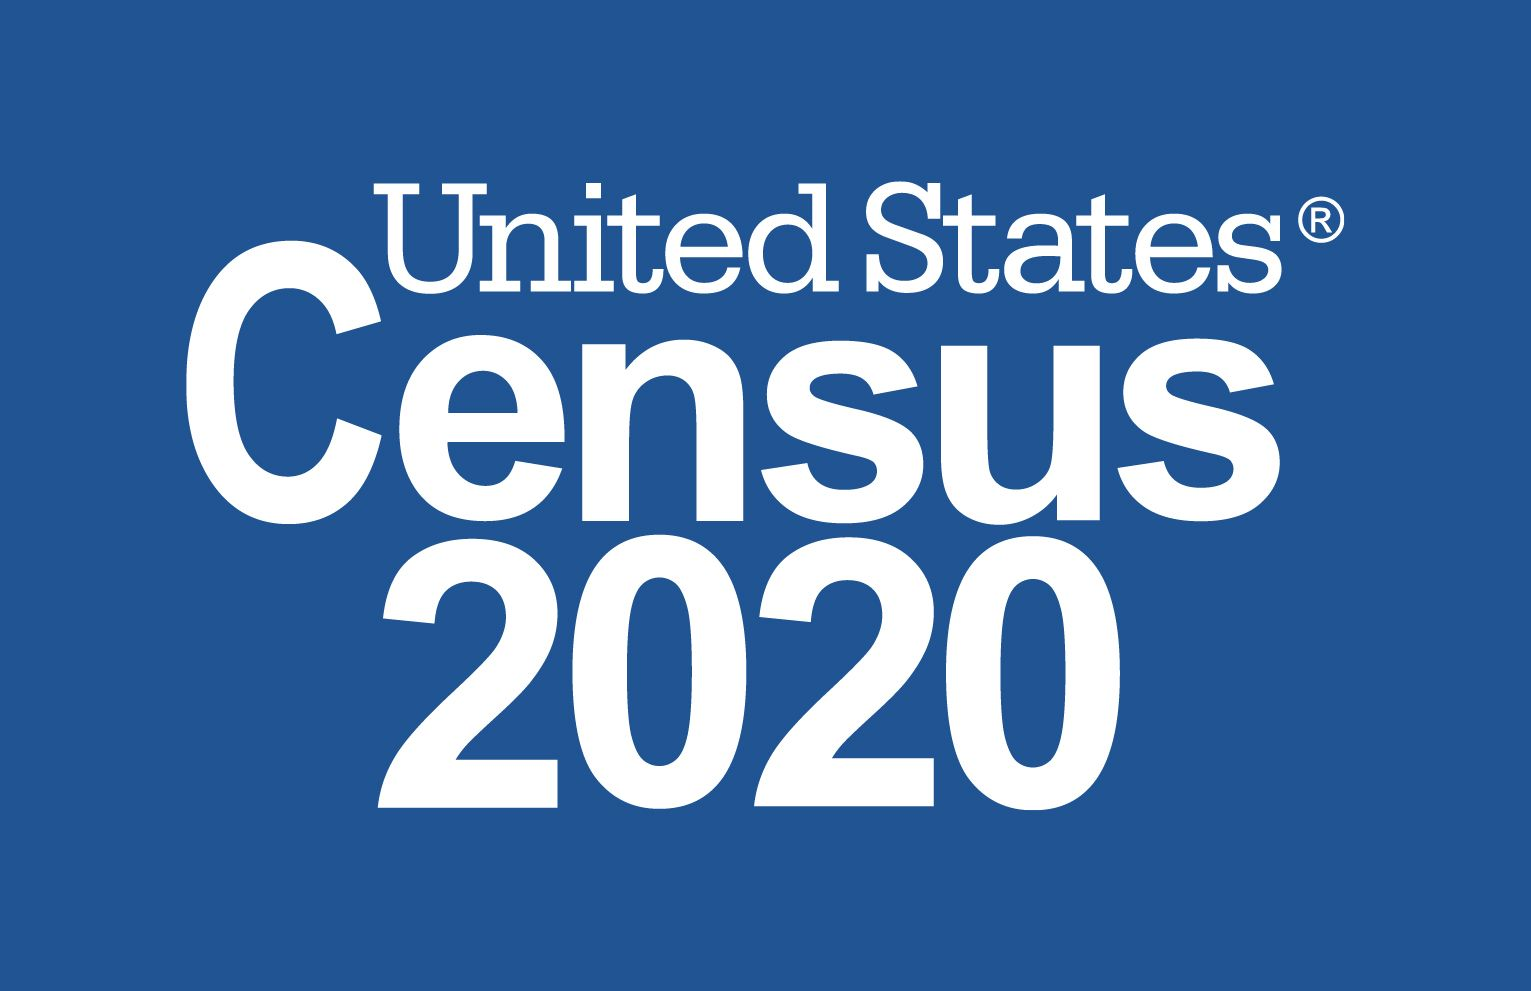 Reminder to fill out the census